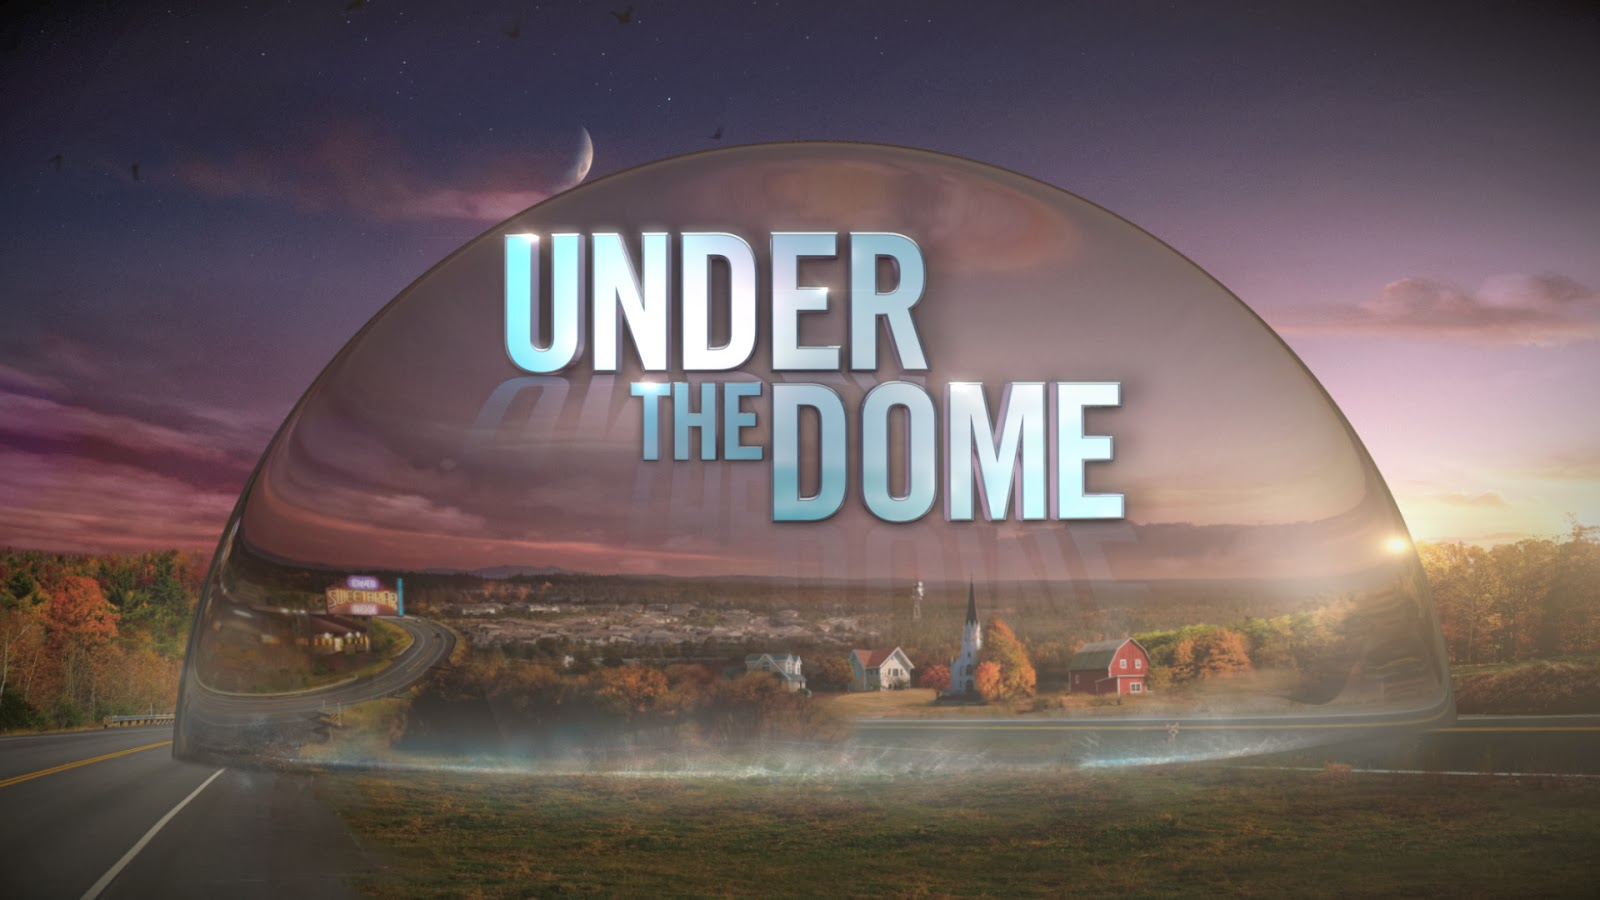 Under The Dome returns to CBS in June 2014